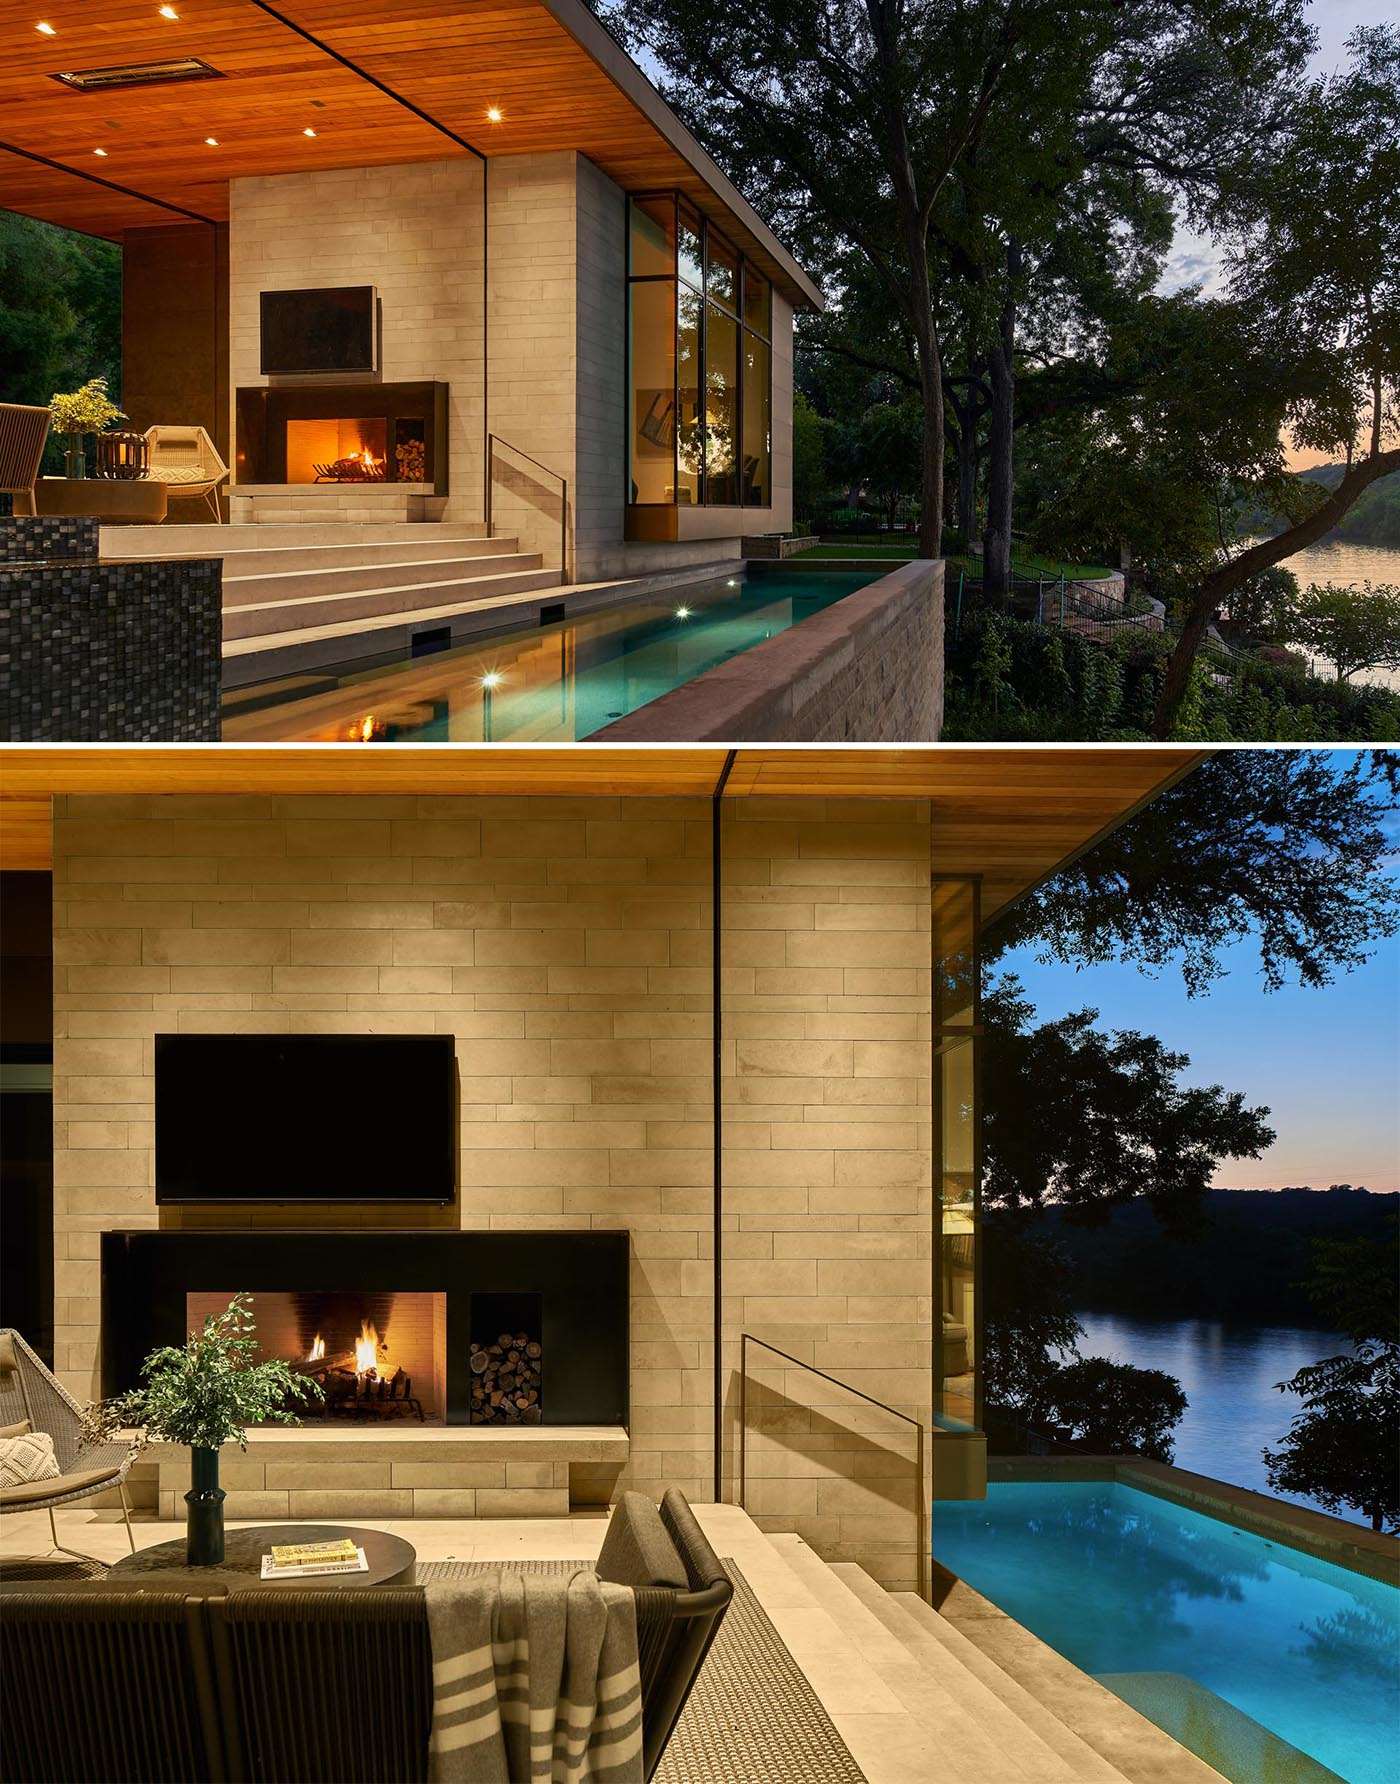 This modern home includes a covered outdoor entertaining space with a lounge, dining area, and a fireplace. Steps lead down to a swimming pool with views of the lake.